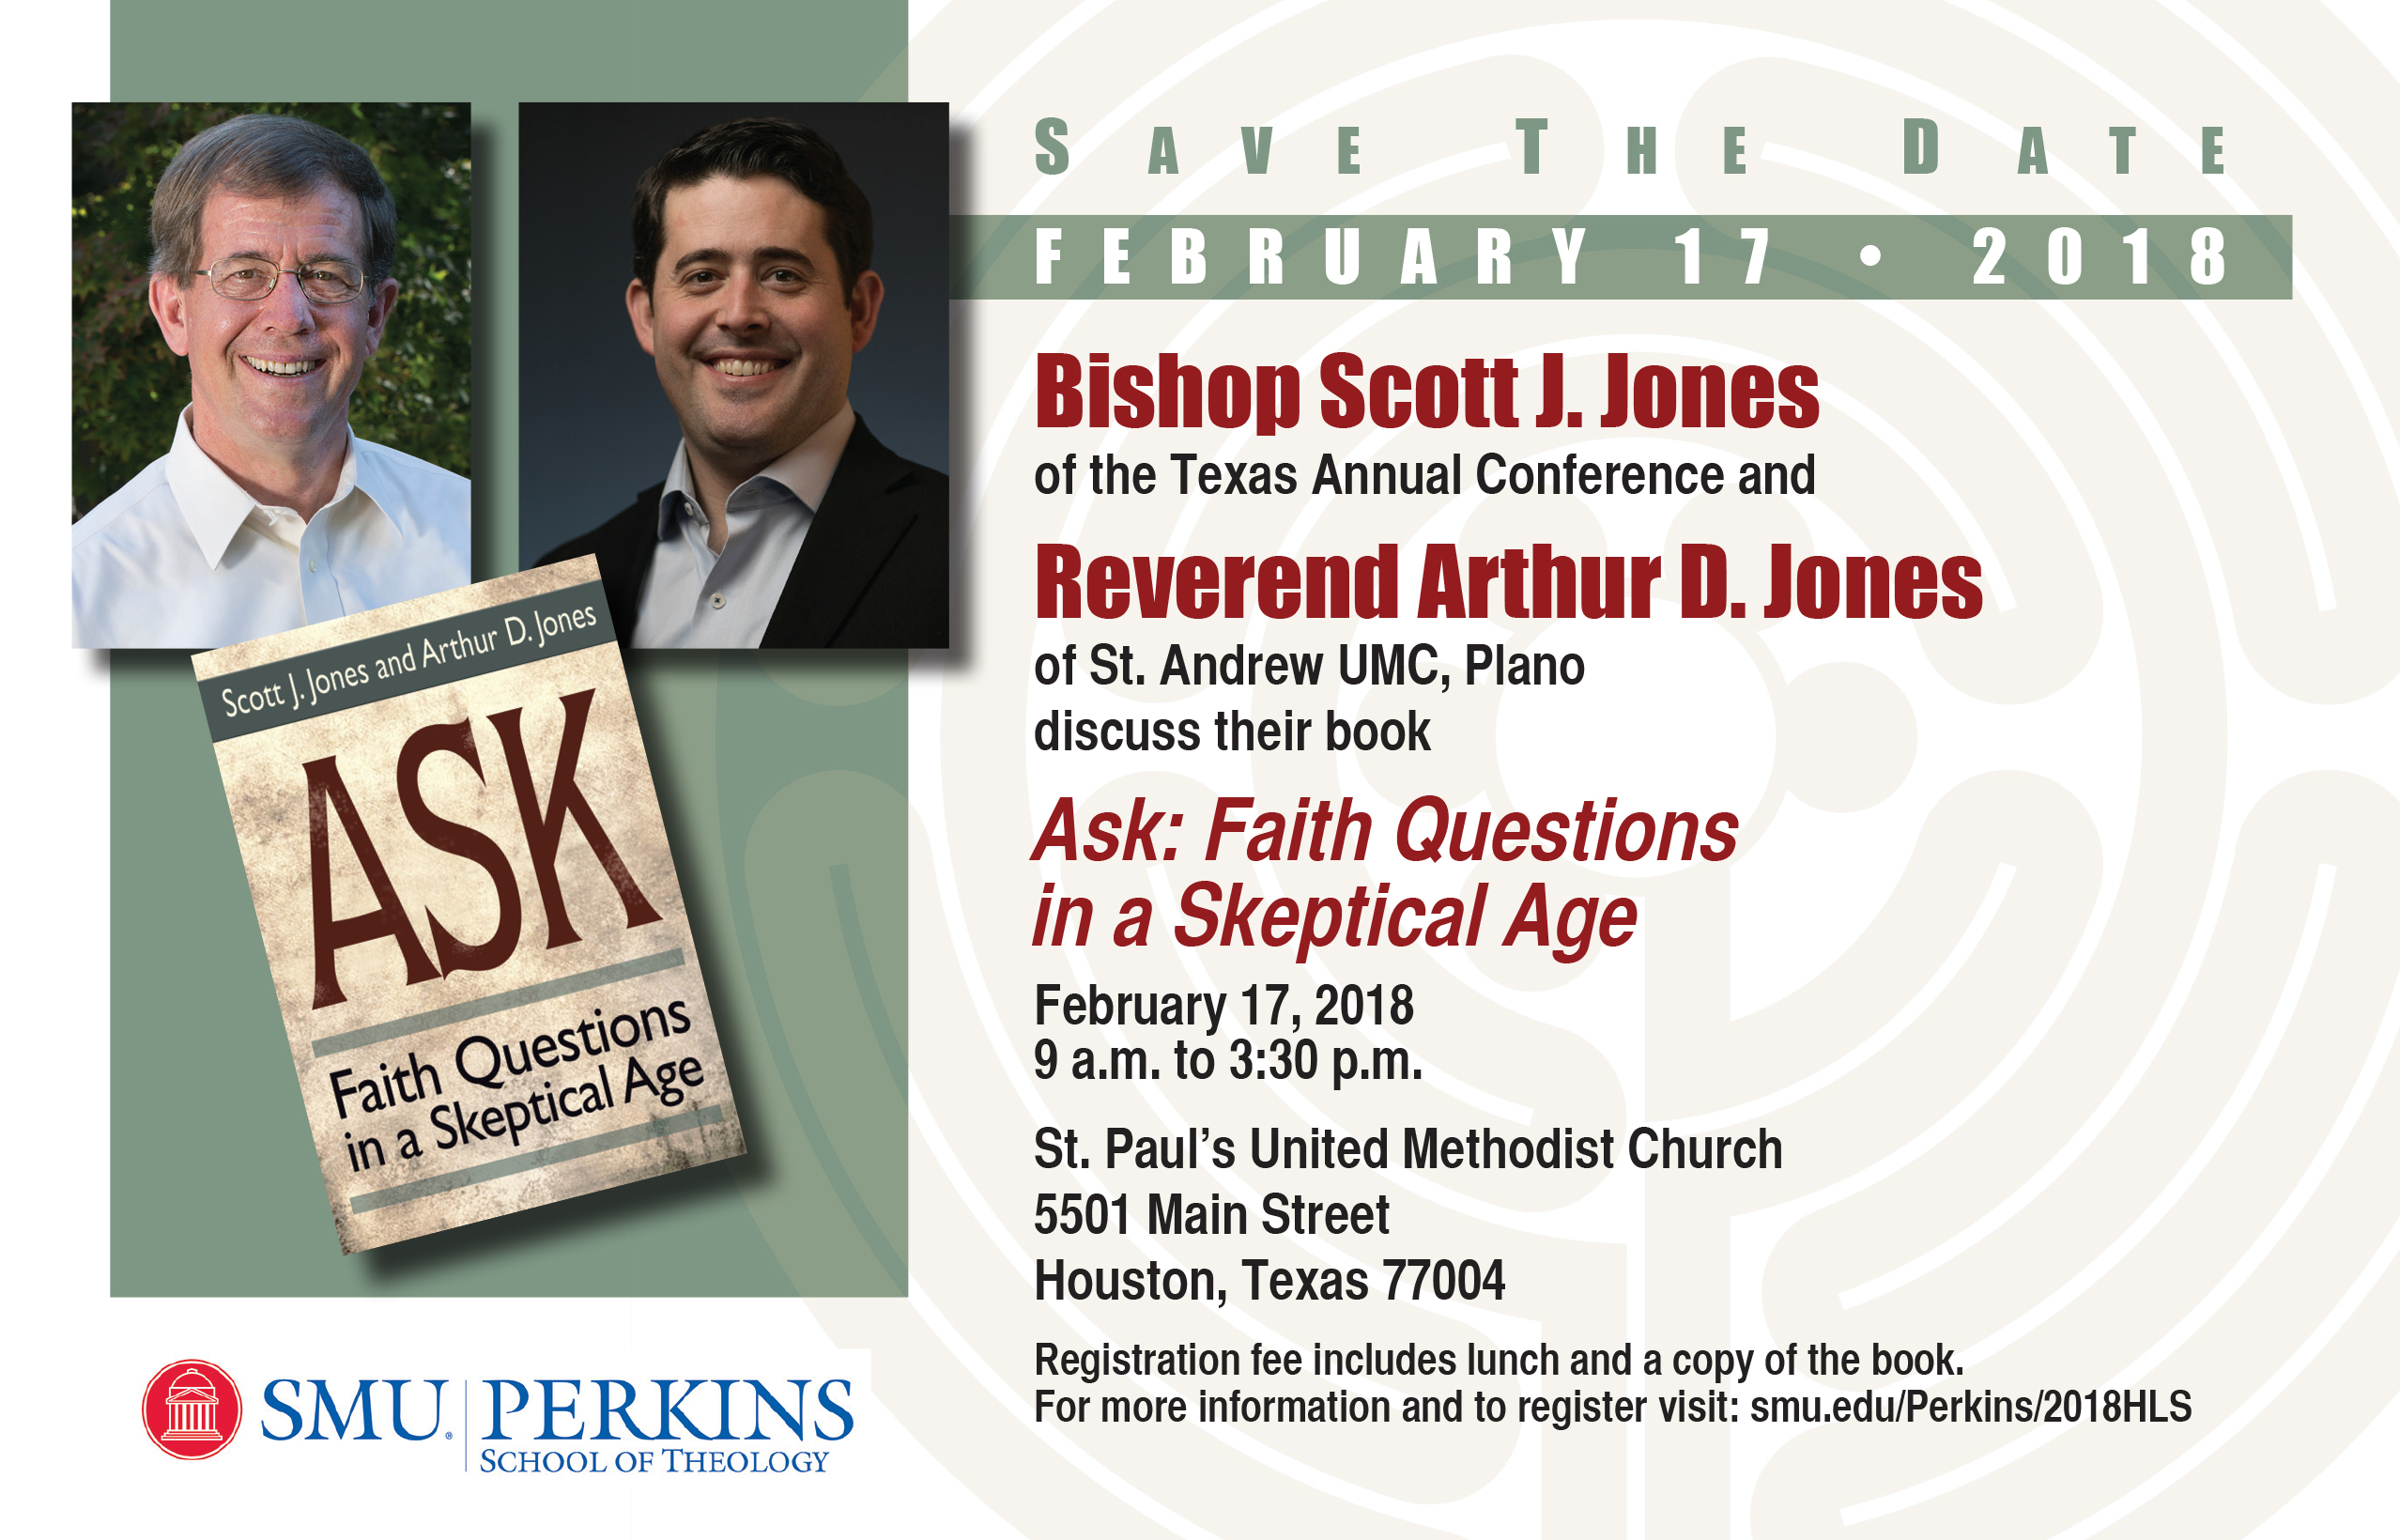 Scott and Arthur Jones discuss their book Ask: Faith Questions in a Skeptical Age